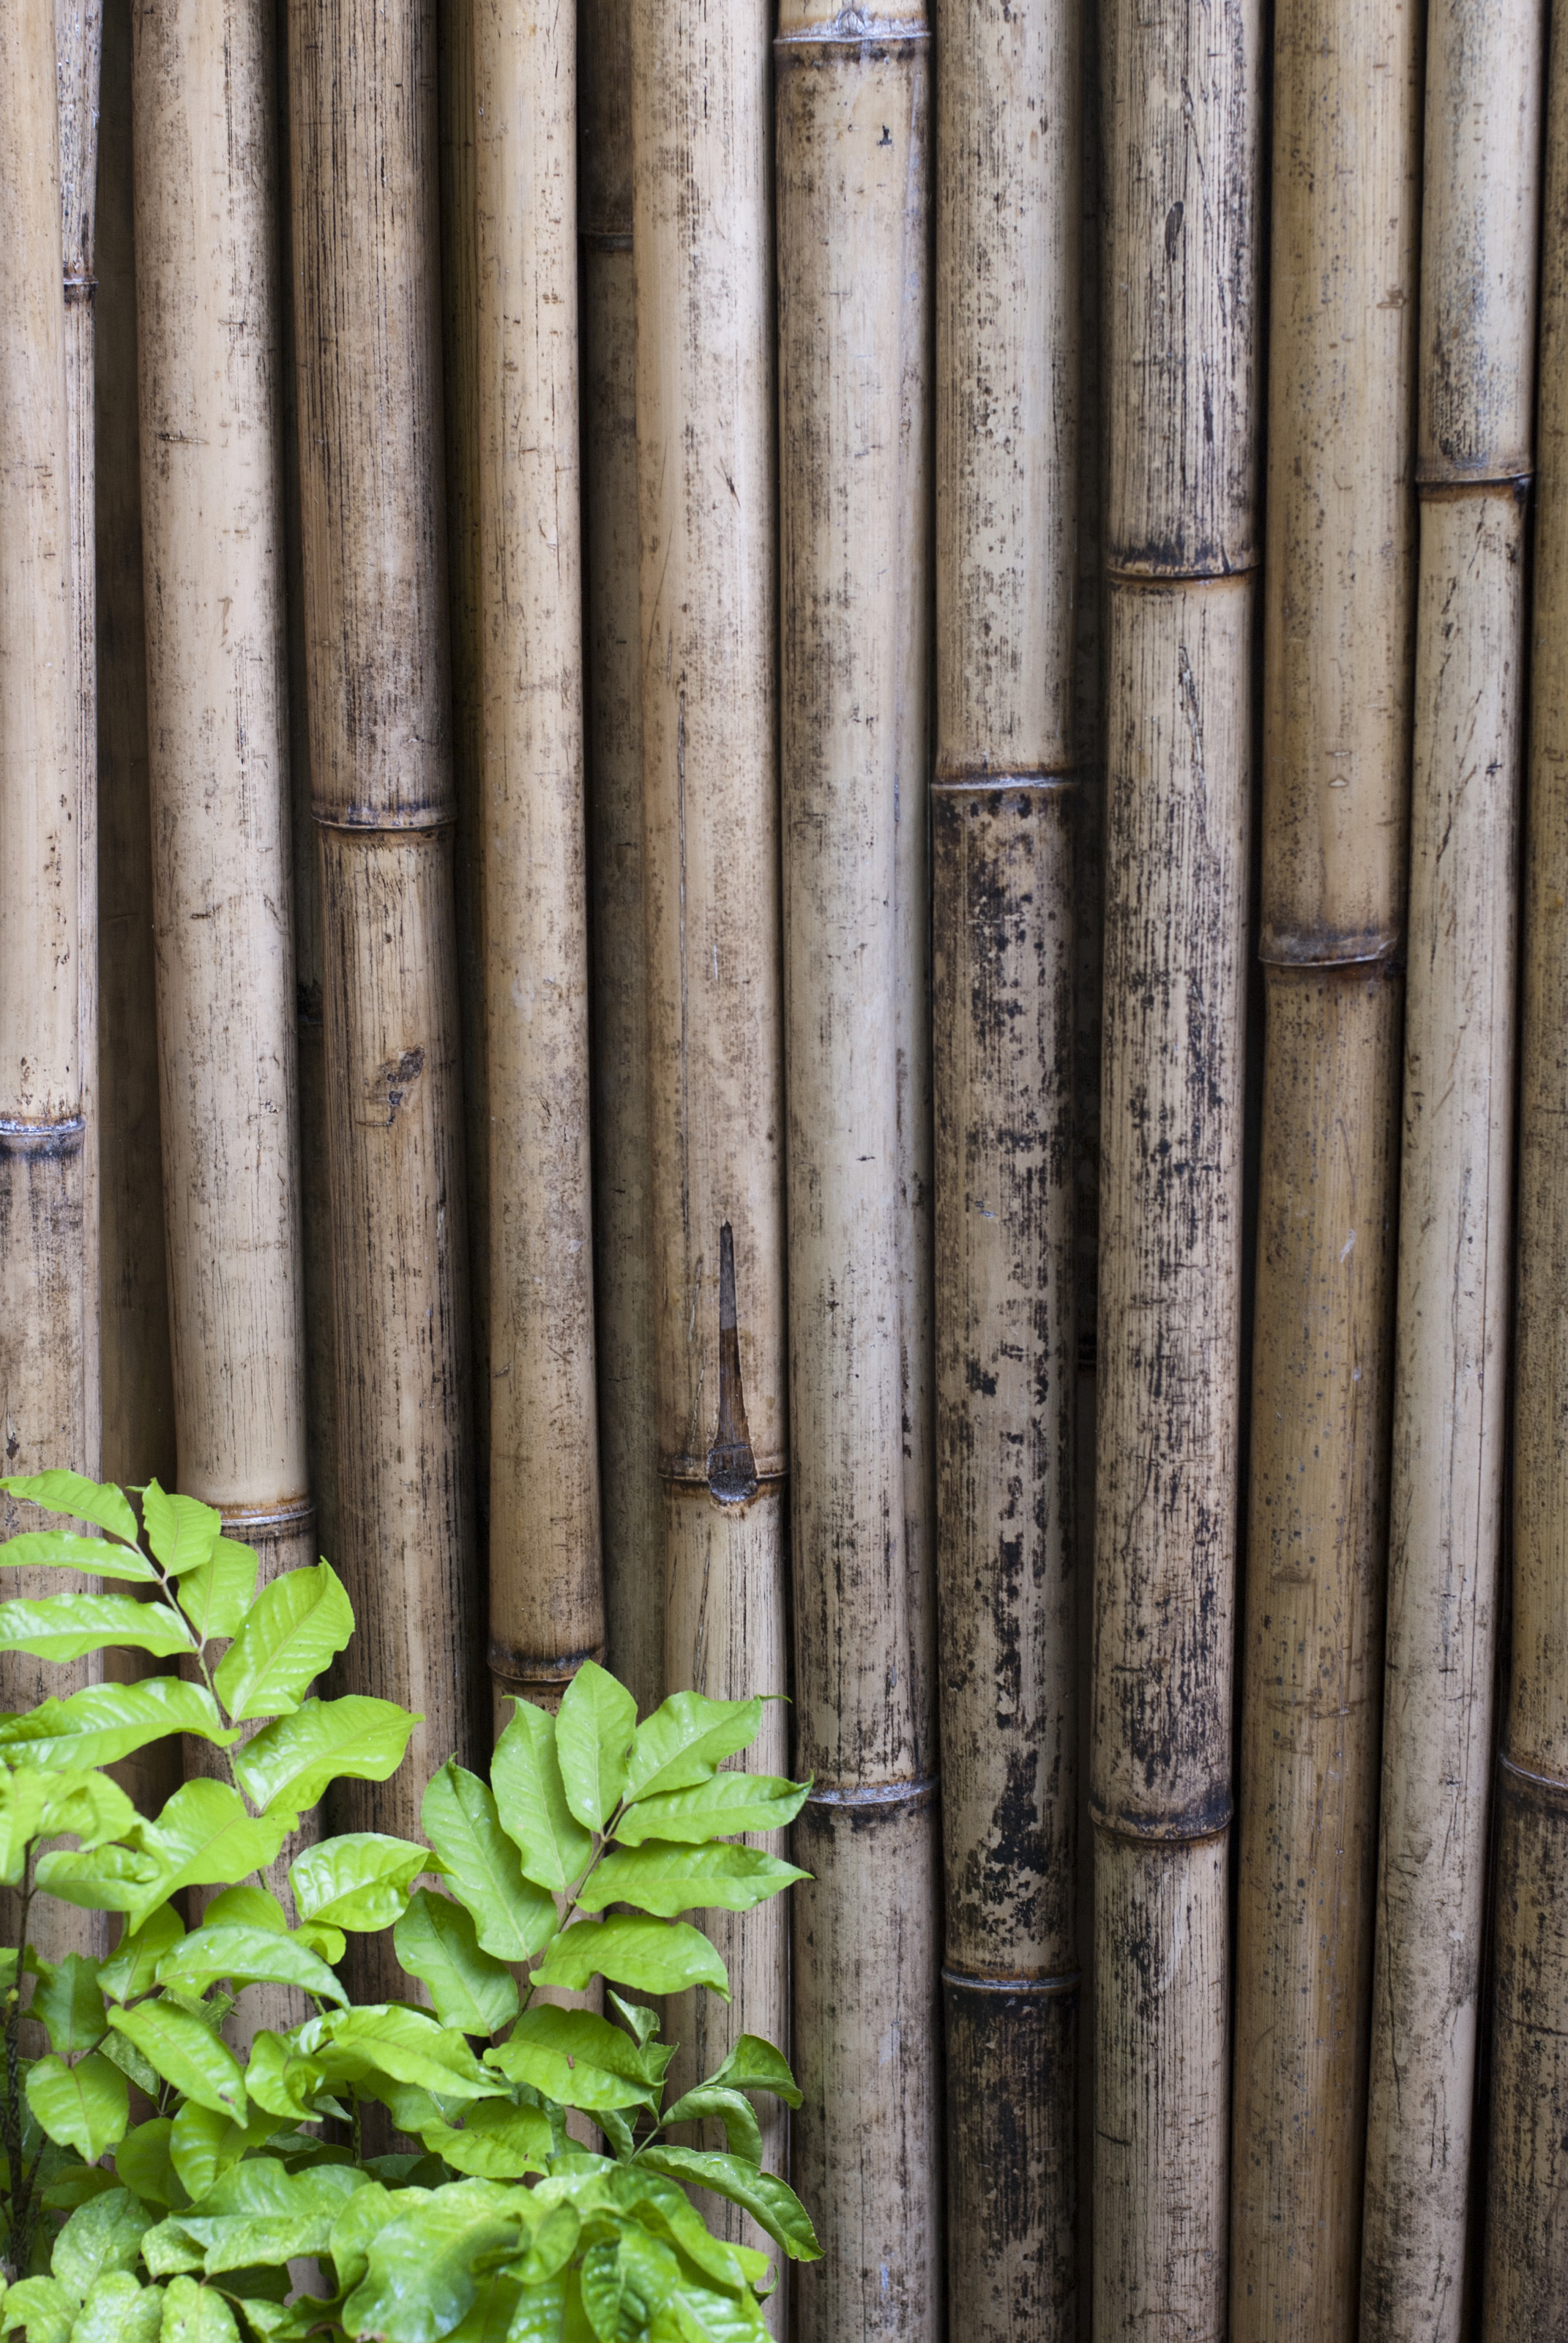 Dried Bamboo Fencing 5976 Stockarch Free Stock Photos